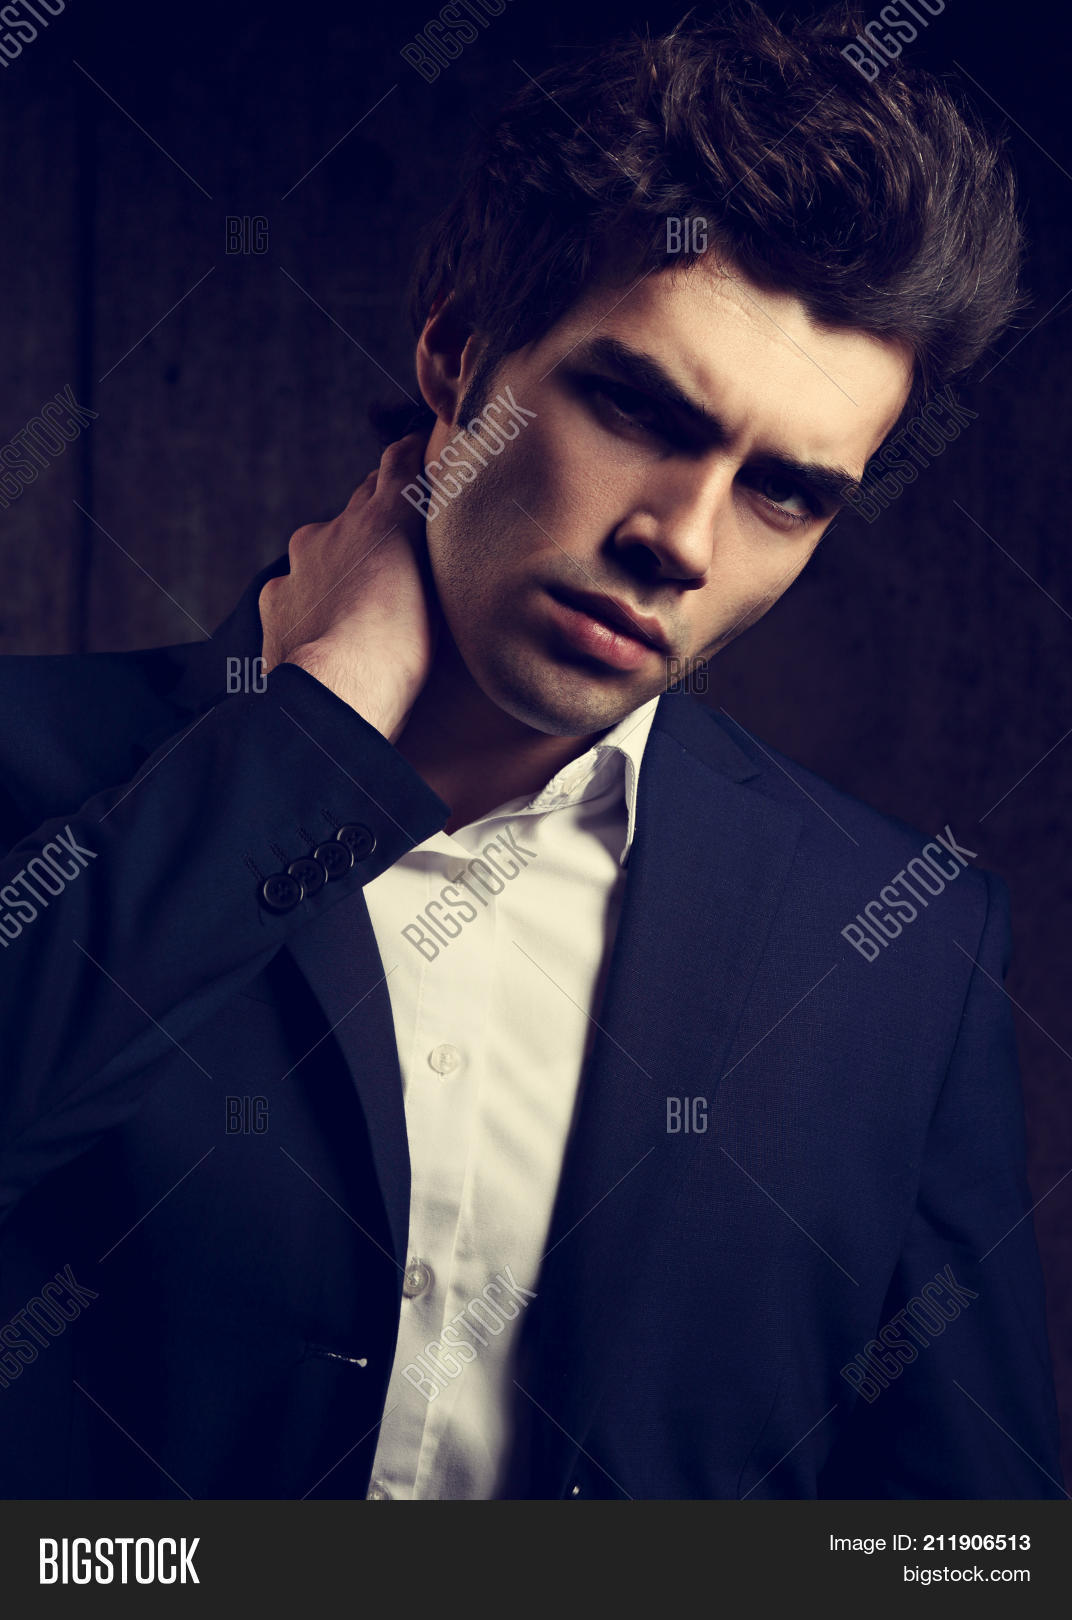 eb409798 Charismatic handsome business man posing in blue fashion suit and white  style shirt looking on dark shadow background. Closeup toned color portrait